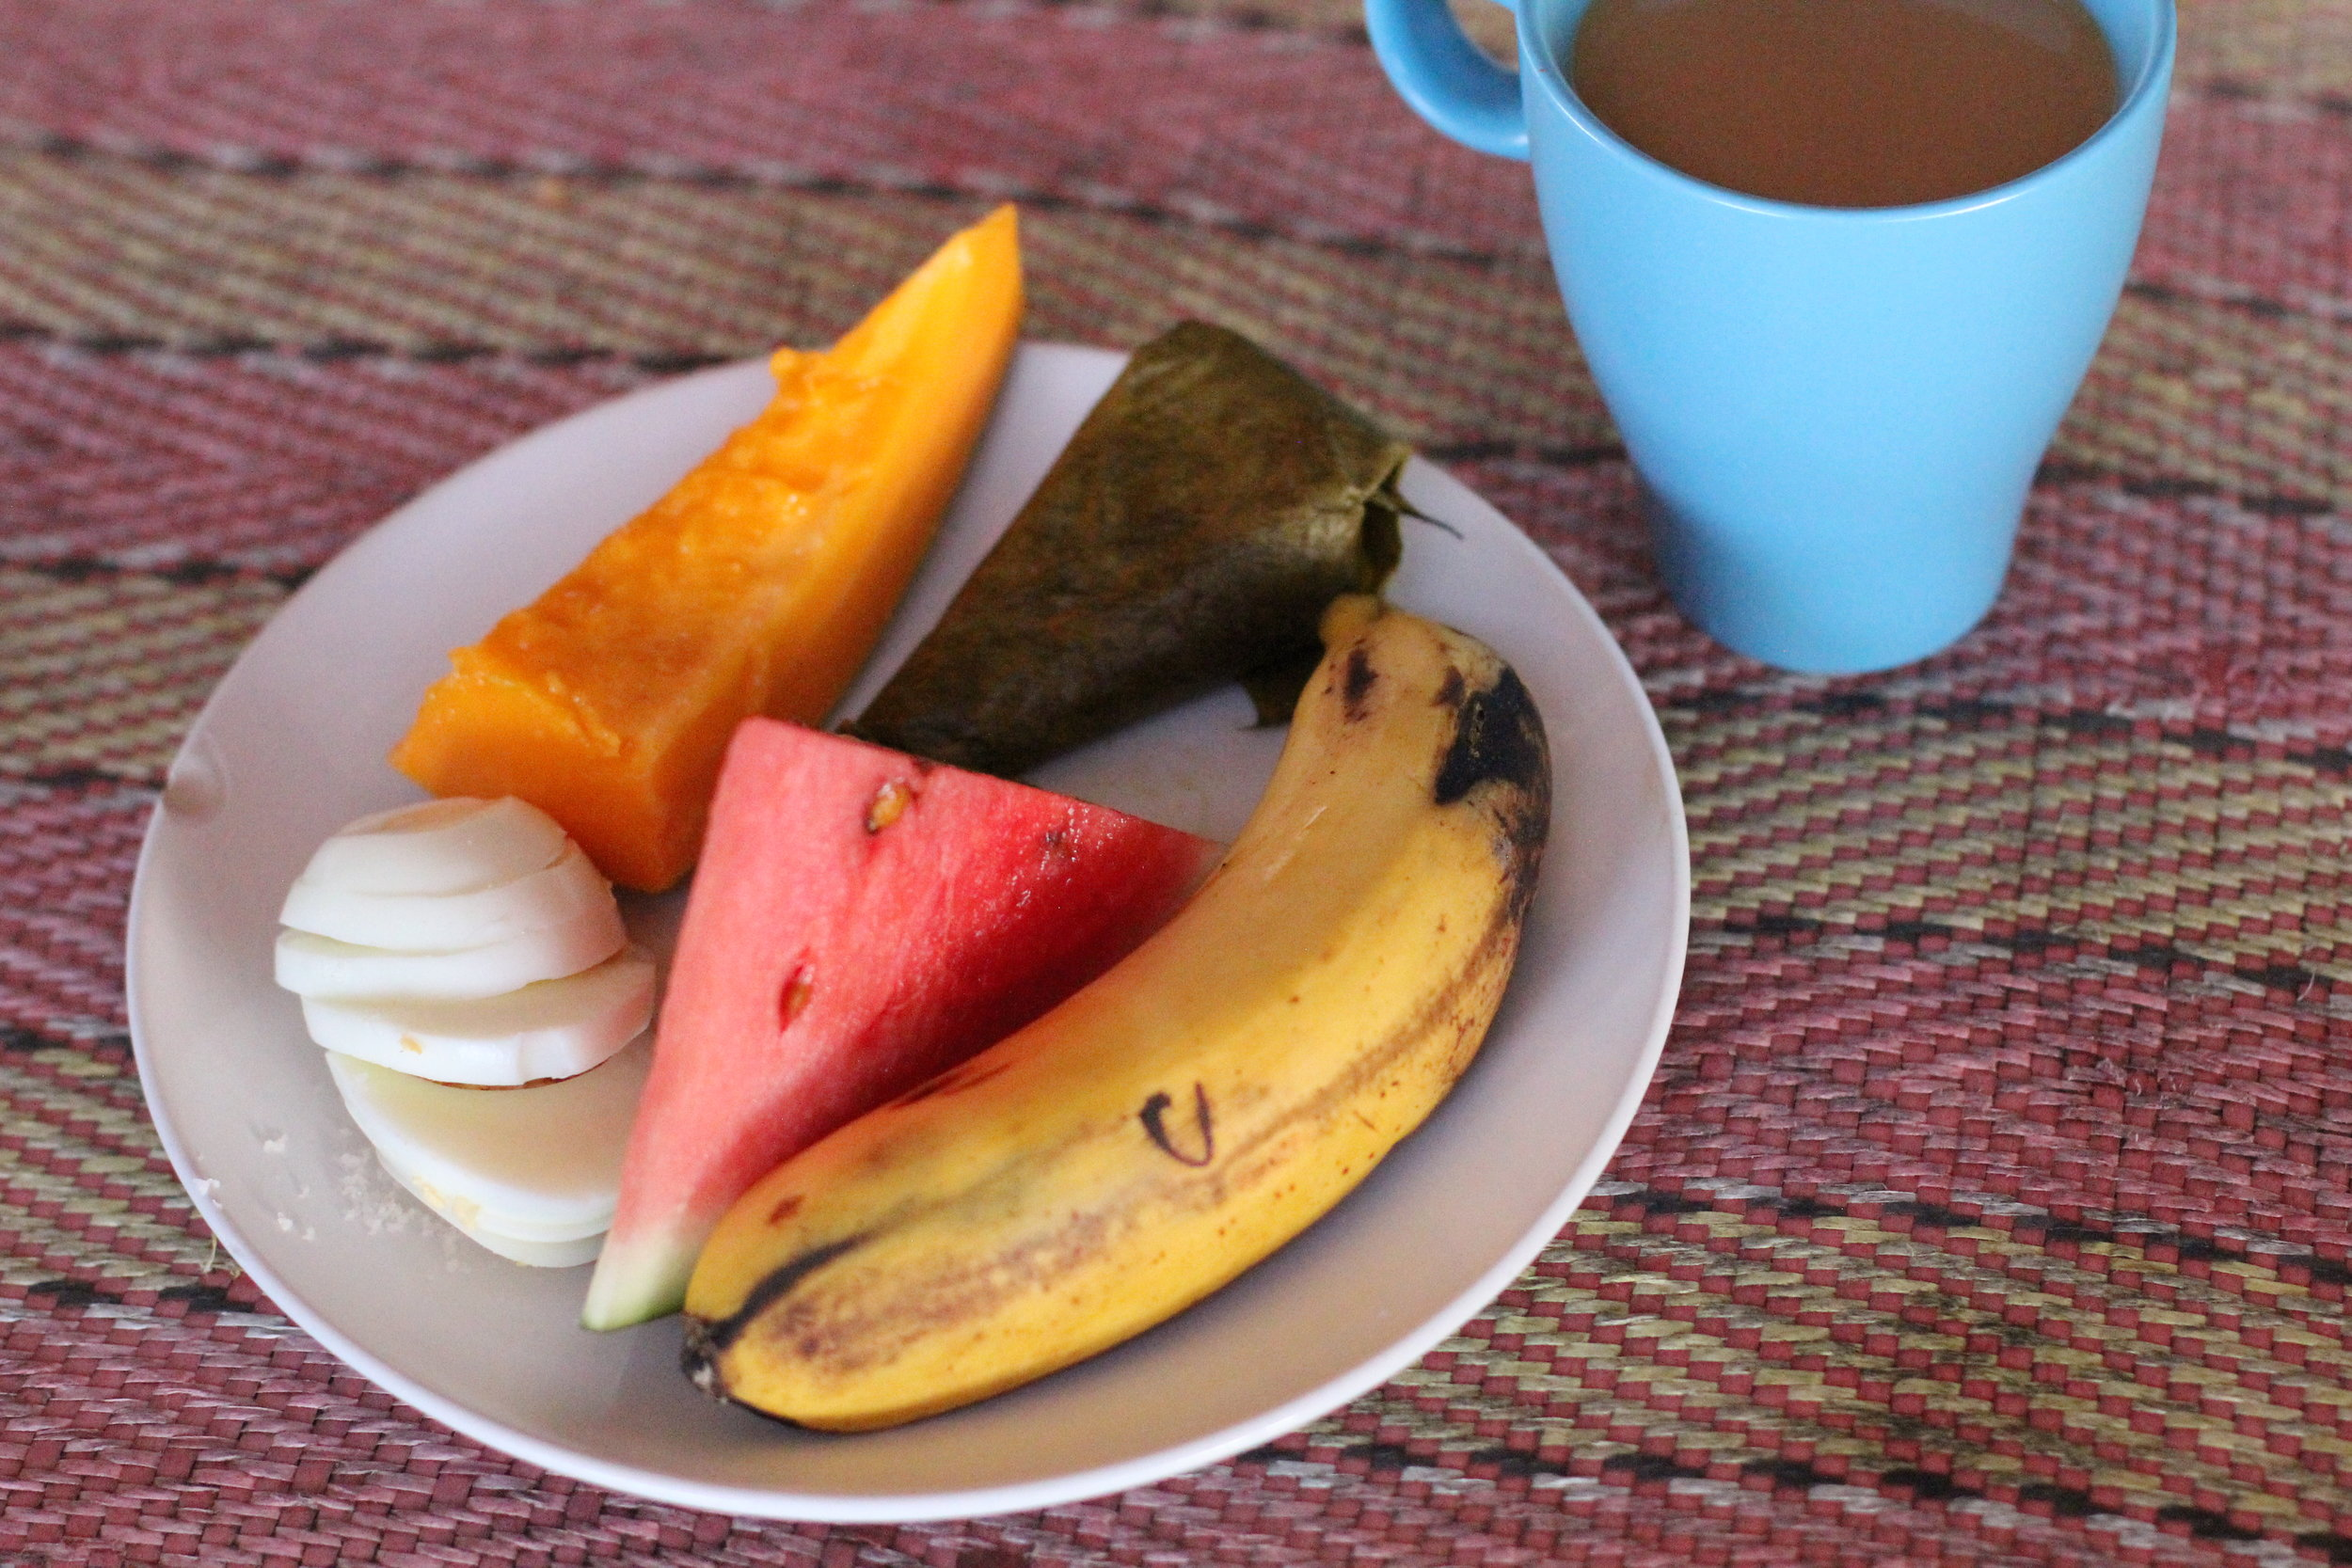 Breakfast: Fresh Fruit, Suman (Rice cooked in coconut milk and wrapped in a banana leaf, boiled egg (OPtional), coffee or hot chocolate